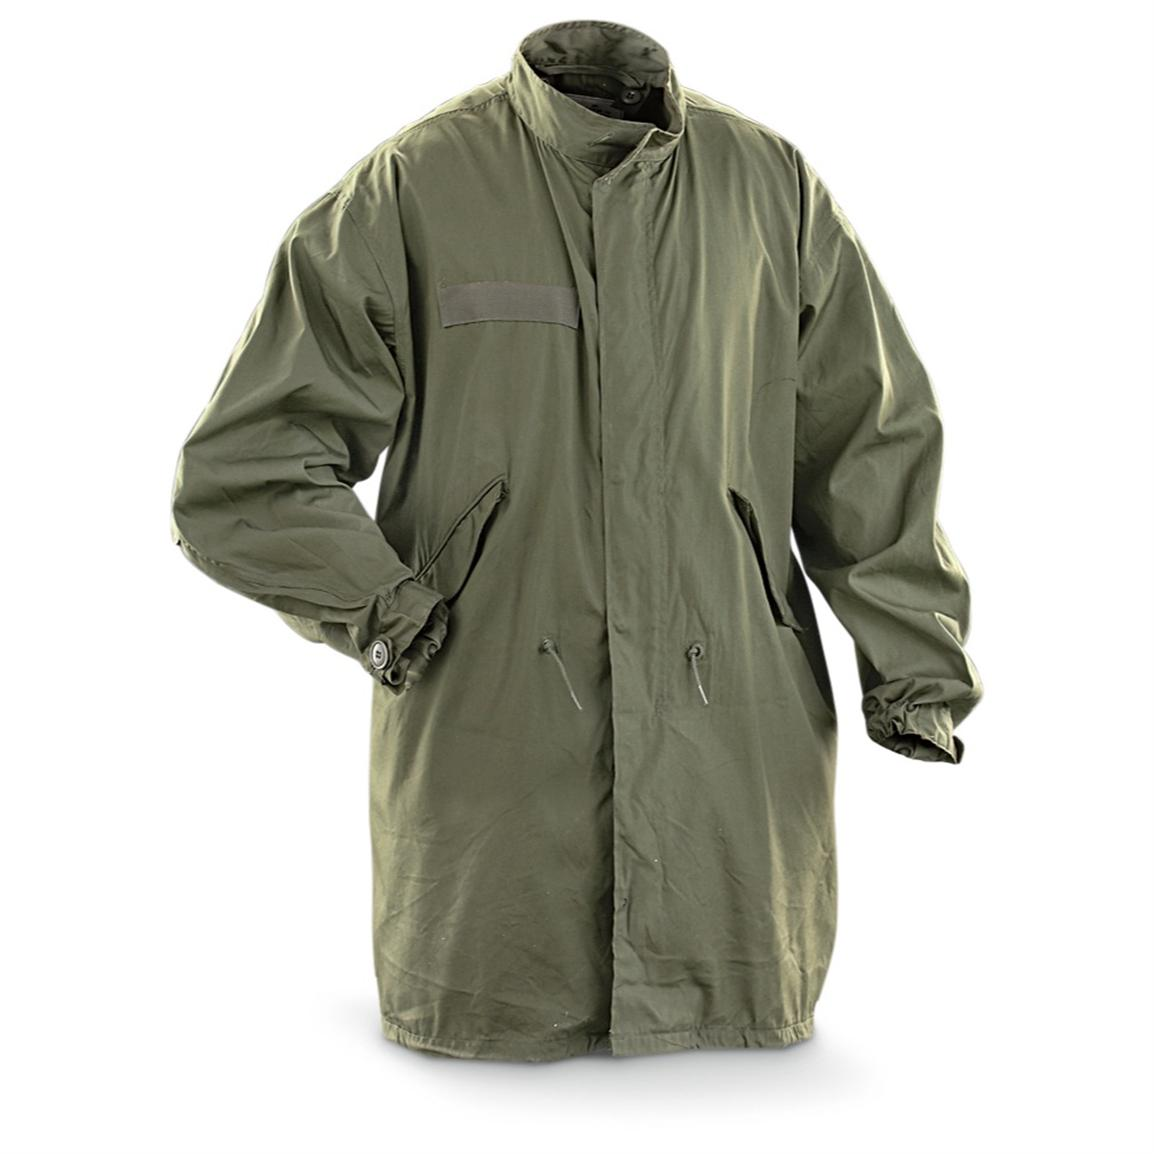 New U.S. Military Surplus Fishtail Parka Shell, Olive Drab ...